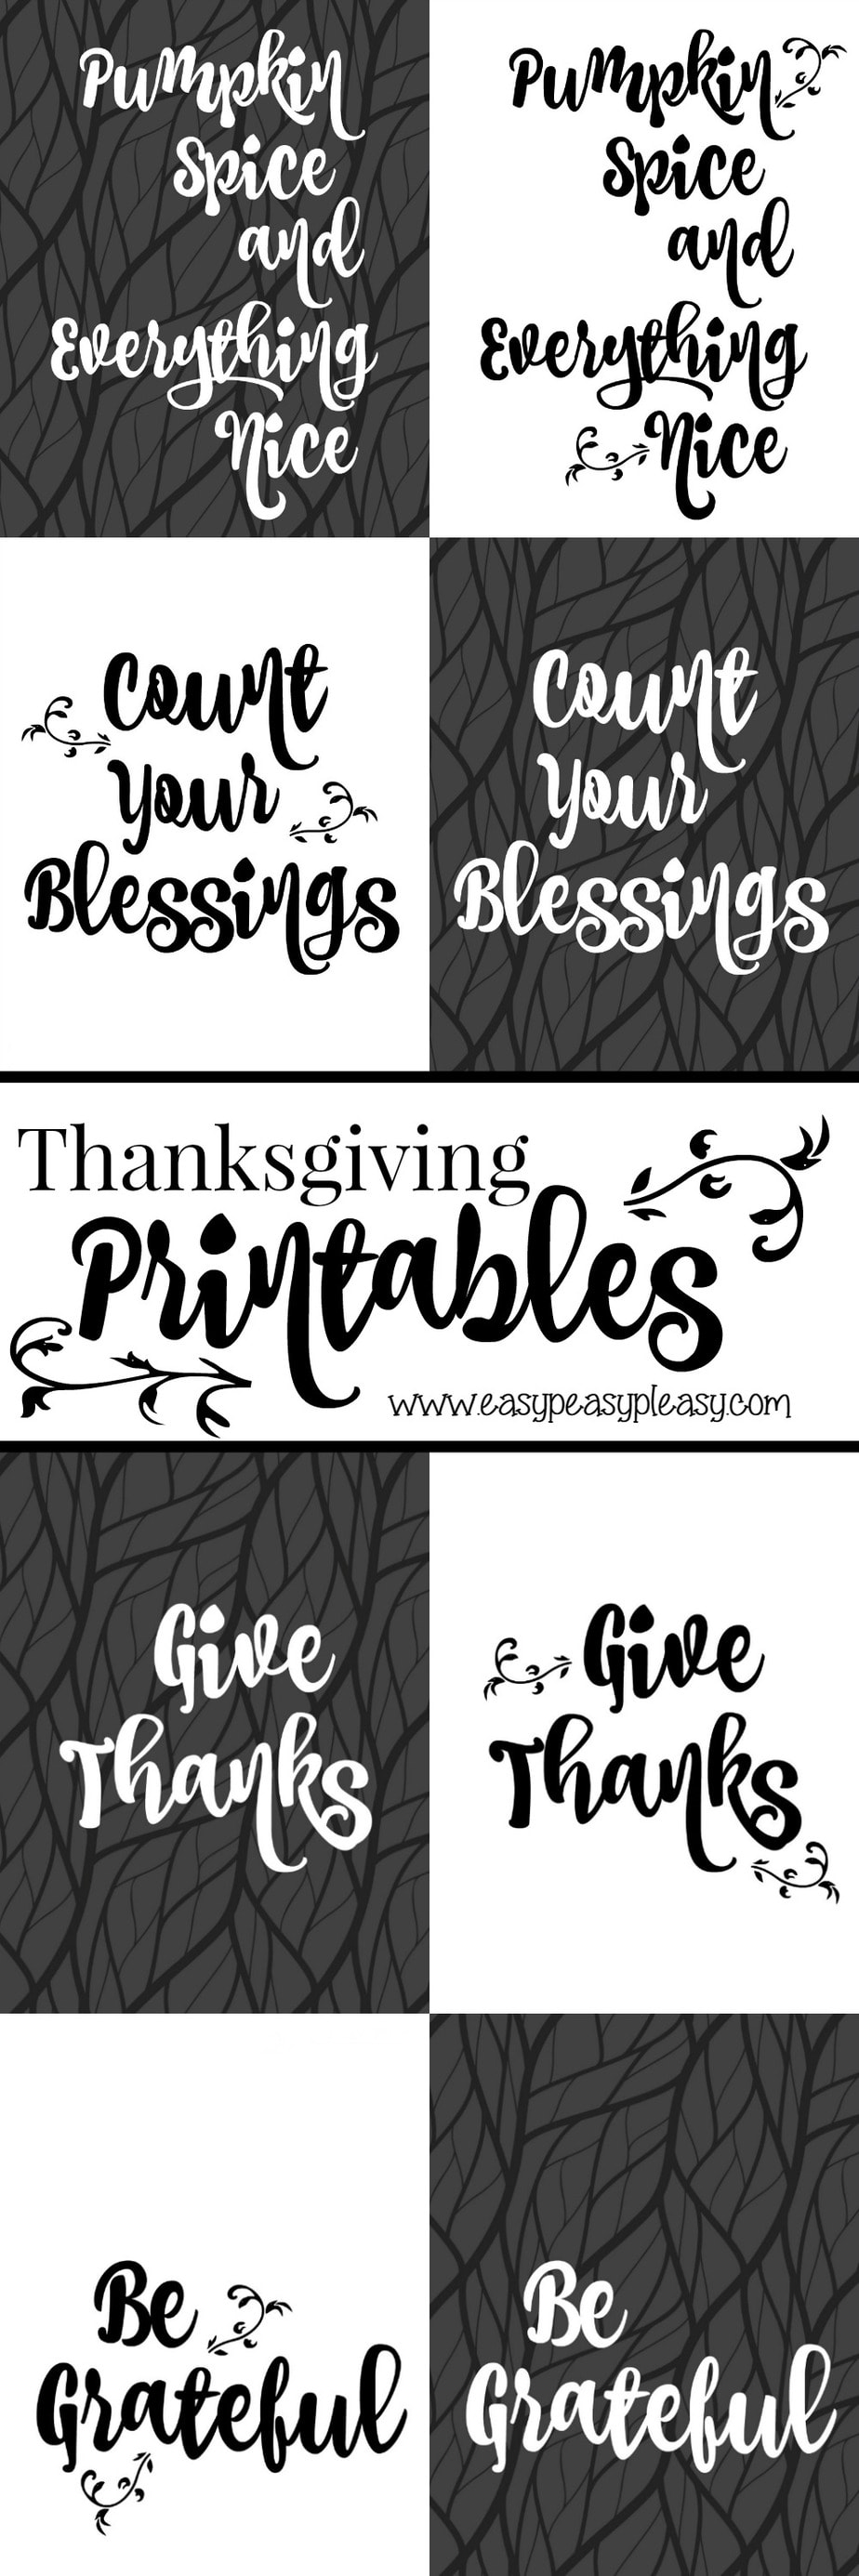 Free Thanksgiving Printables. Download all 8 free printables or the one free printable you want.